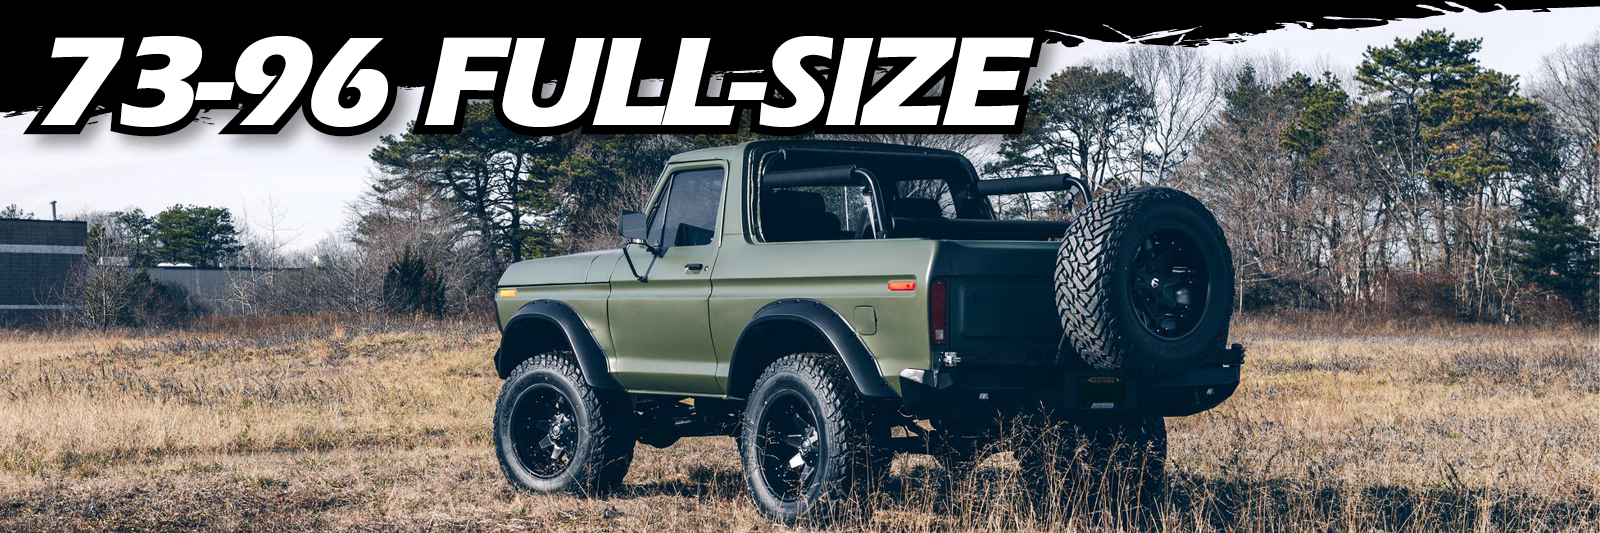 73-96 FULL SIZE BRONCO